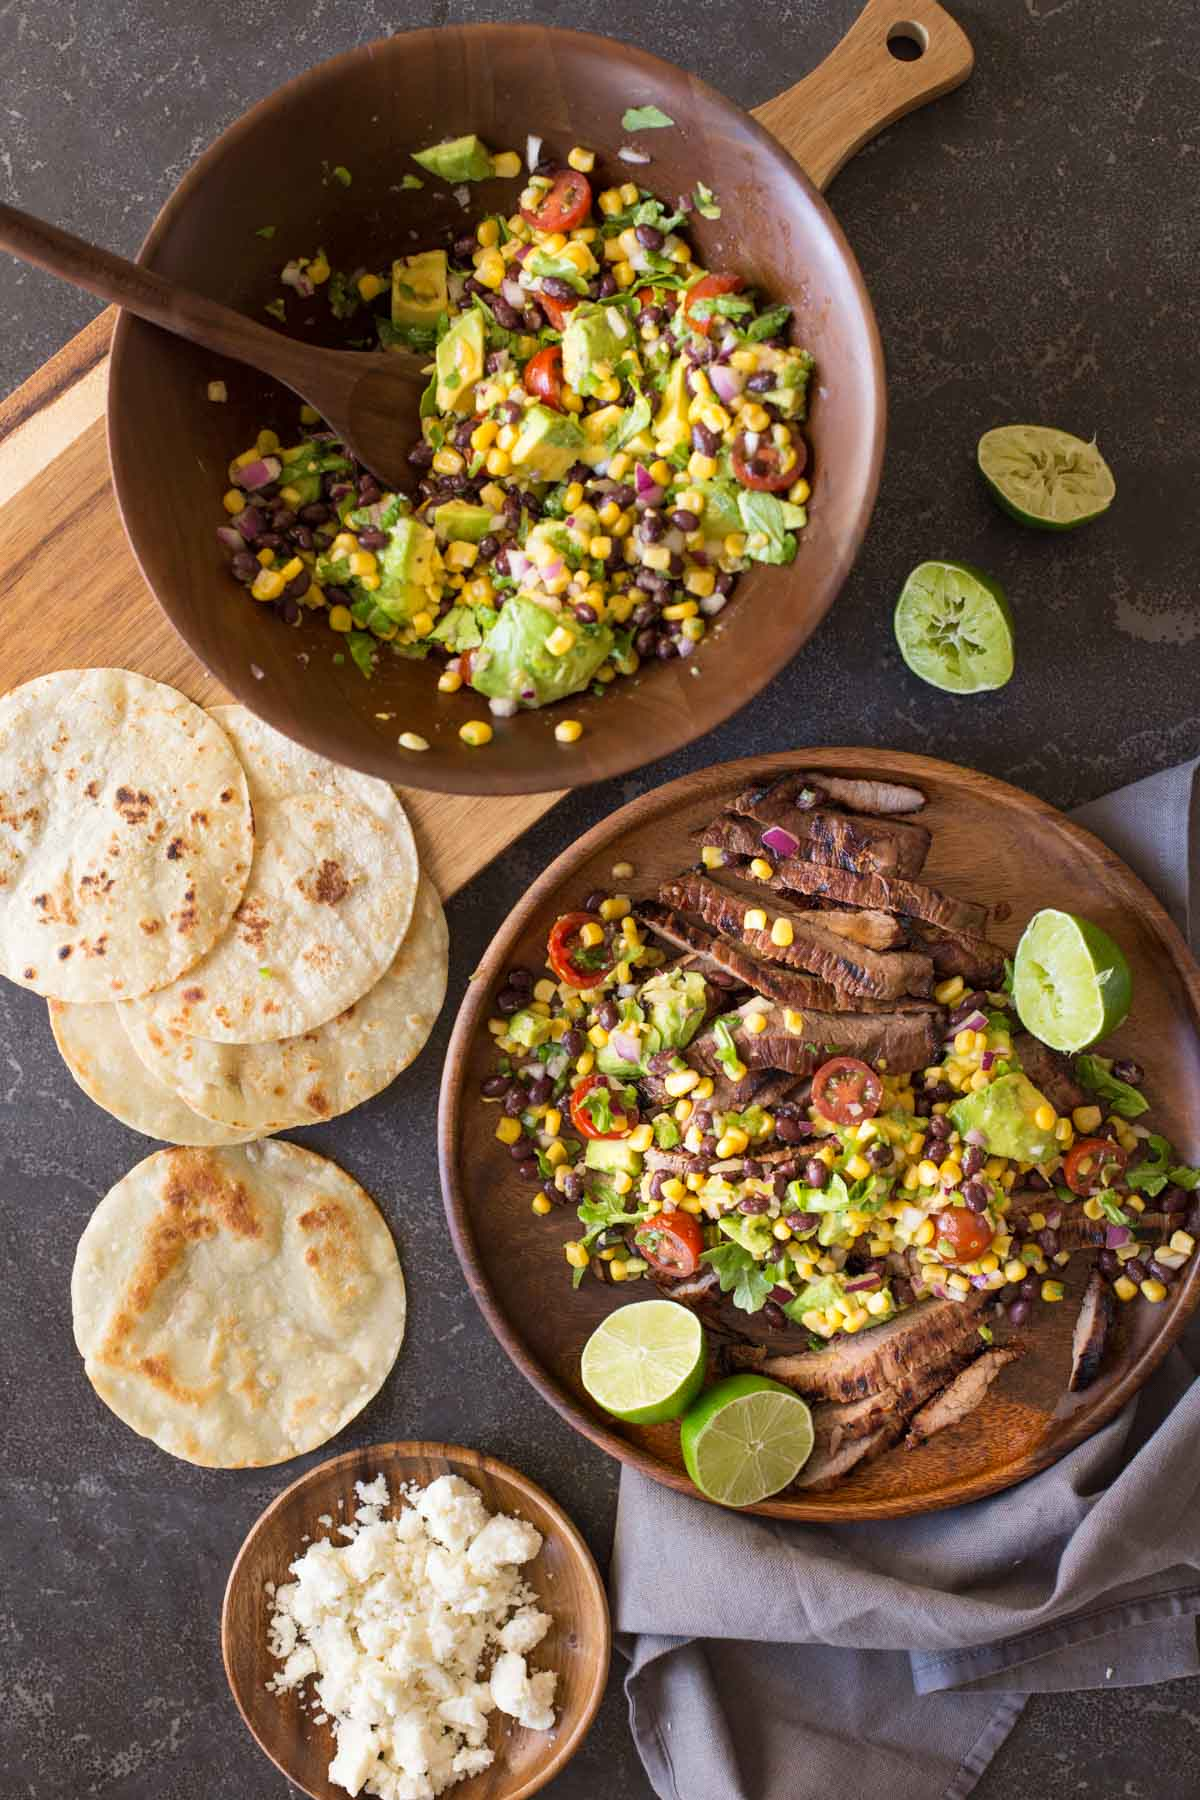 A large wood plate of sliced grilled marinated flank steak and avocado salad with limes cut in half, sitting next to a large wood bowl of avocado salad, some small taco tortillas and a small wood plate of crumbled queso fresco.